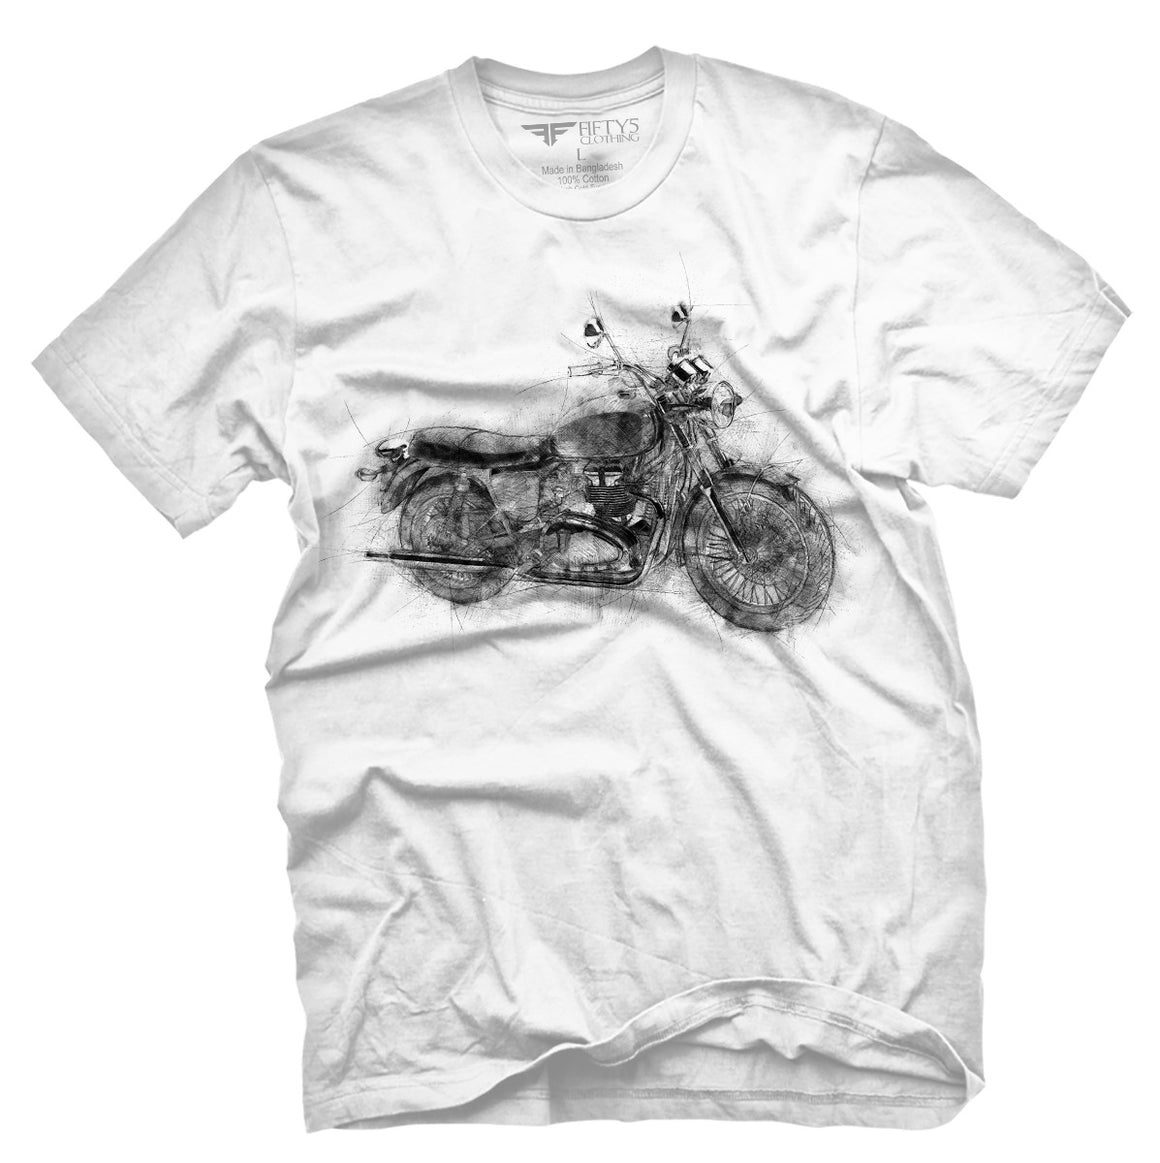 Fifty5 Clothing Vintage Bike Sketch Men's T Shirt